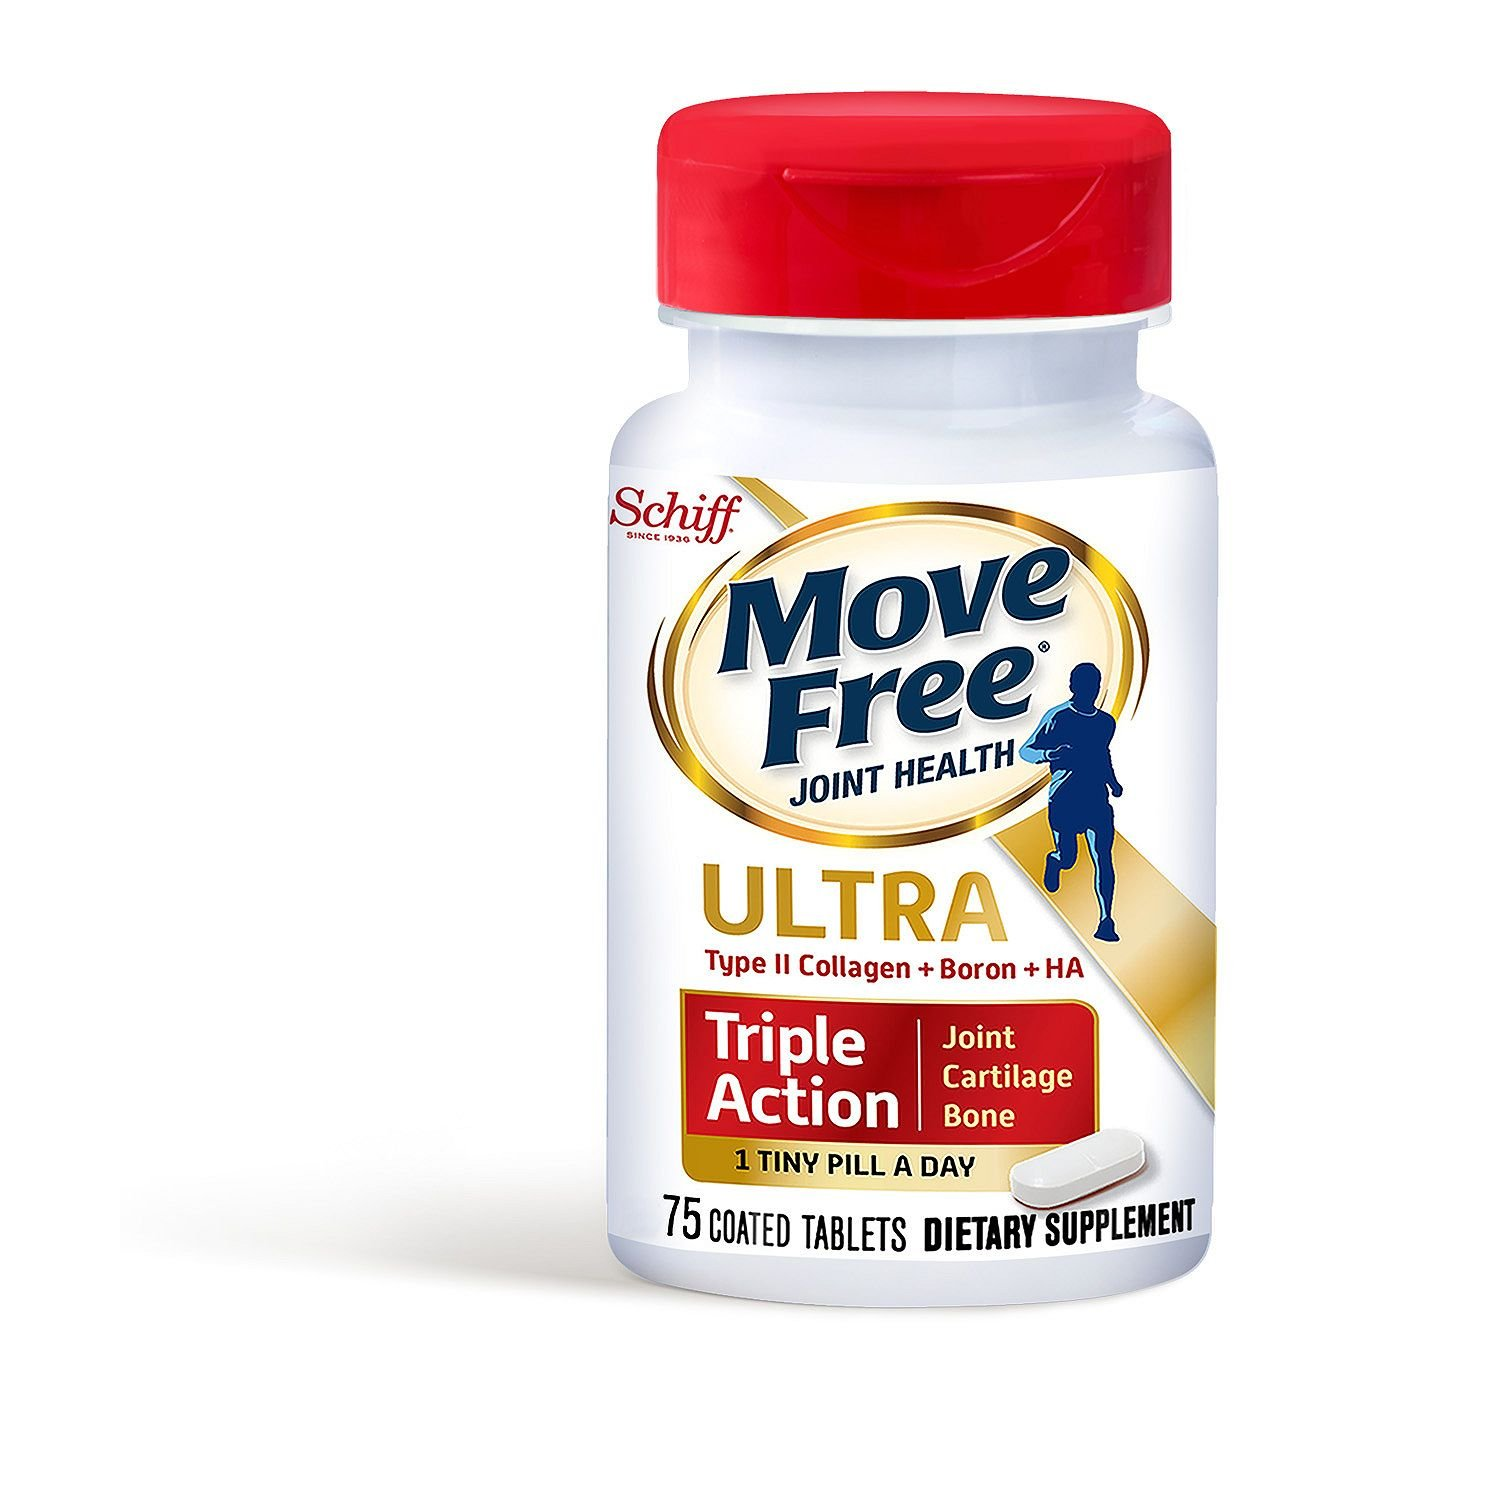 Schiff Move Free Ultra Triple-Action Tablets (75 count) (pack of 6)